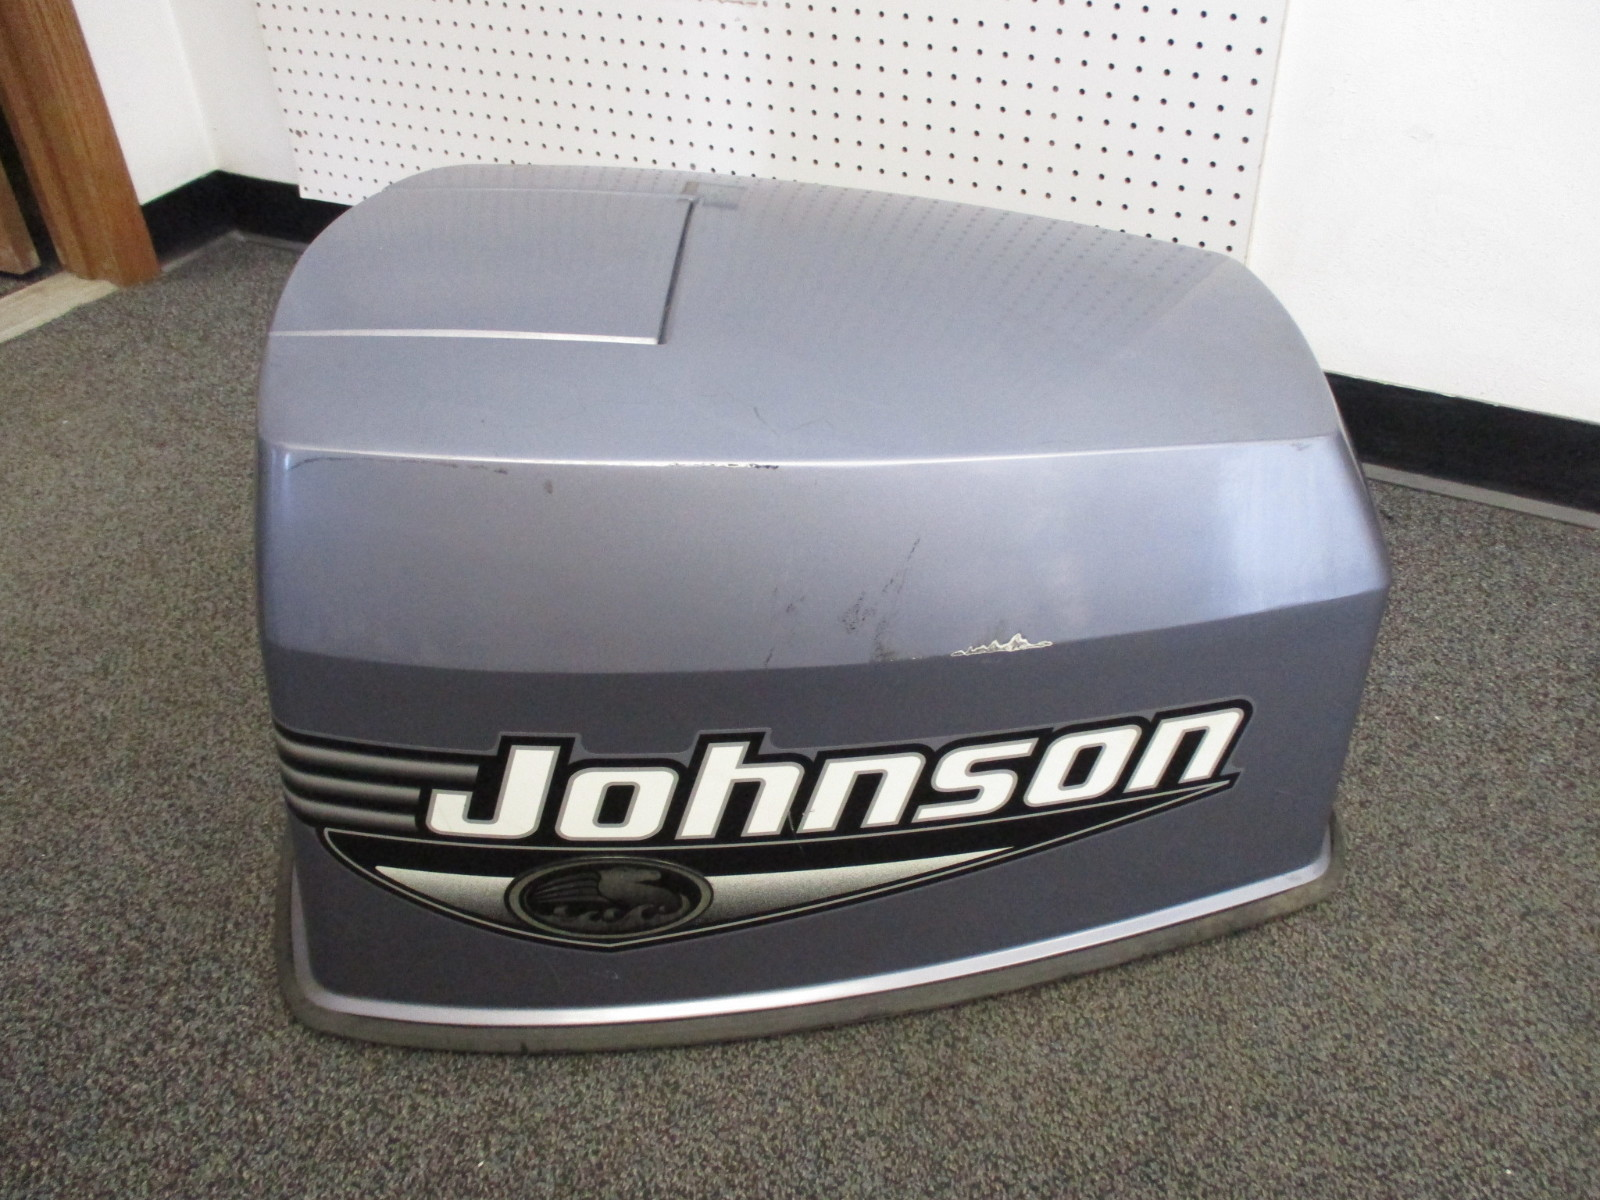 5006435 johnson evinrude outboard engine motor cover for Boat motor covers johnson